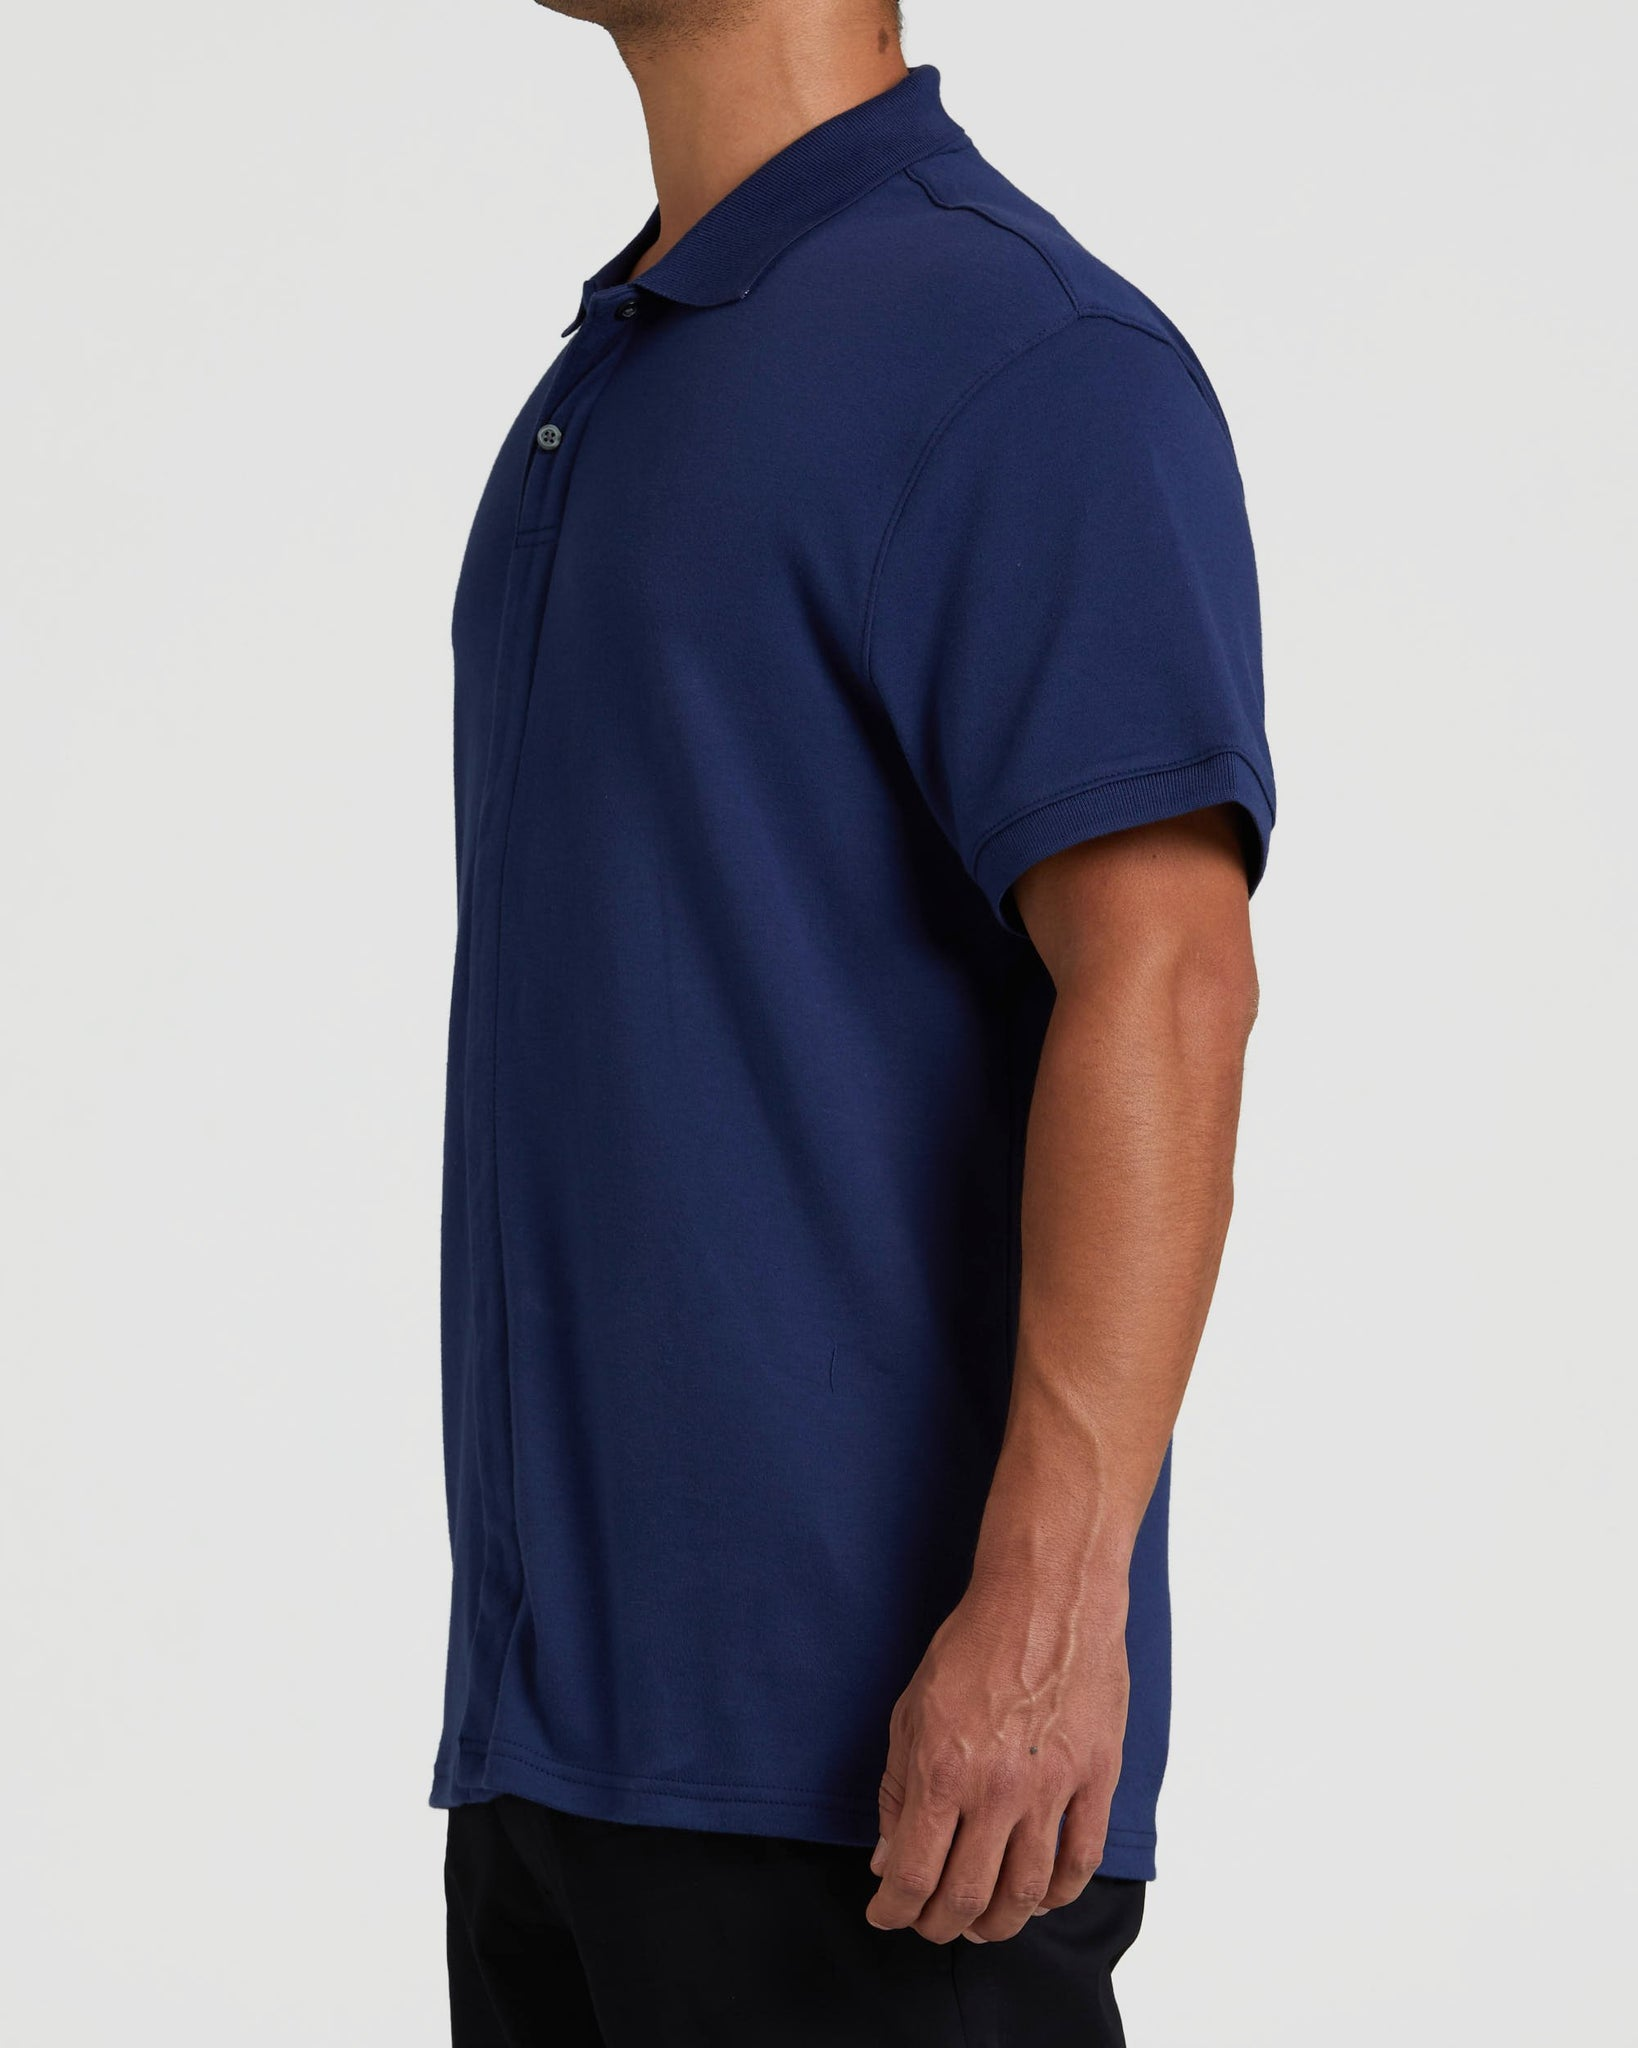 https://cdn.shopify.com/s/files/1/0249/6141/7252/files/Magna_Ready_-_Mens_-_Polo_-_Deep_Navy-1-fade.mp4?4372